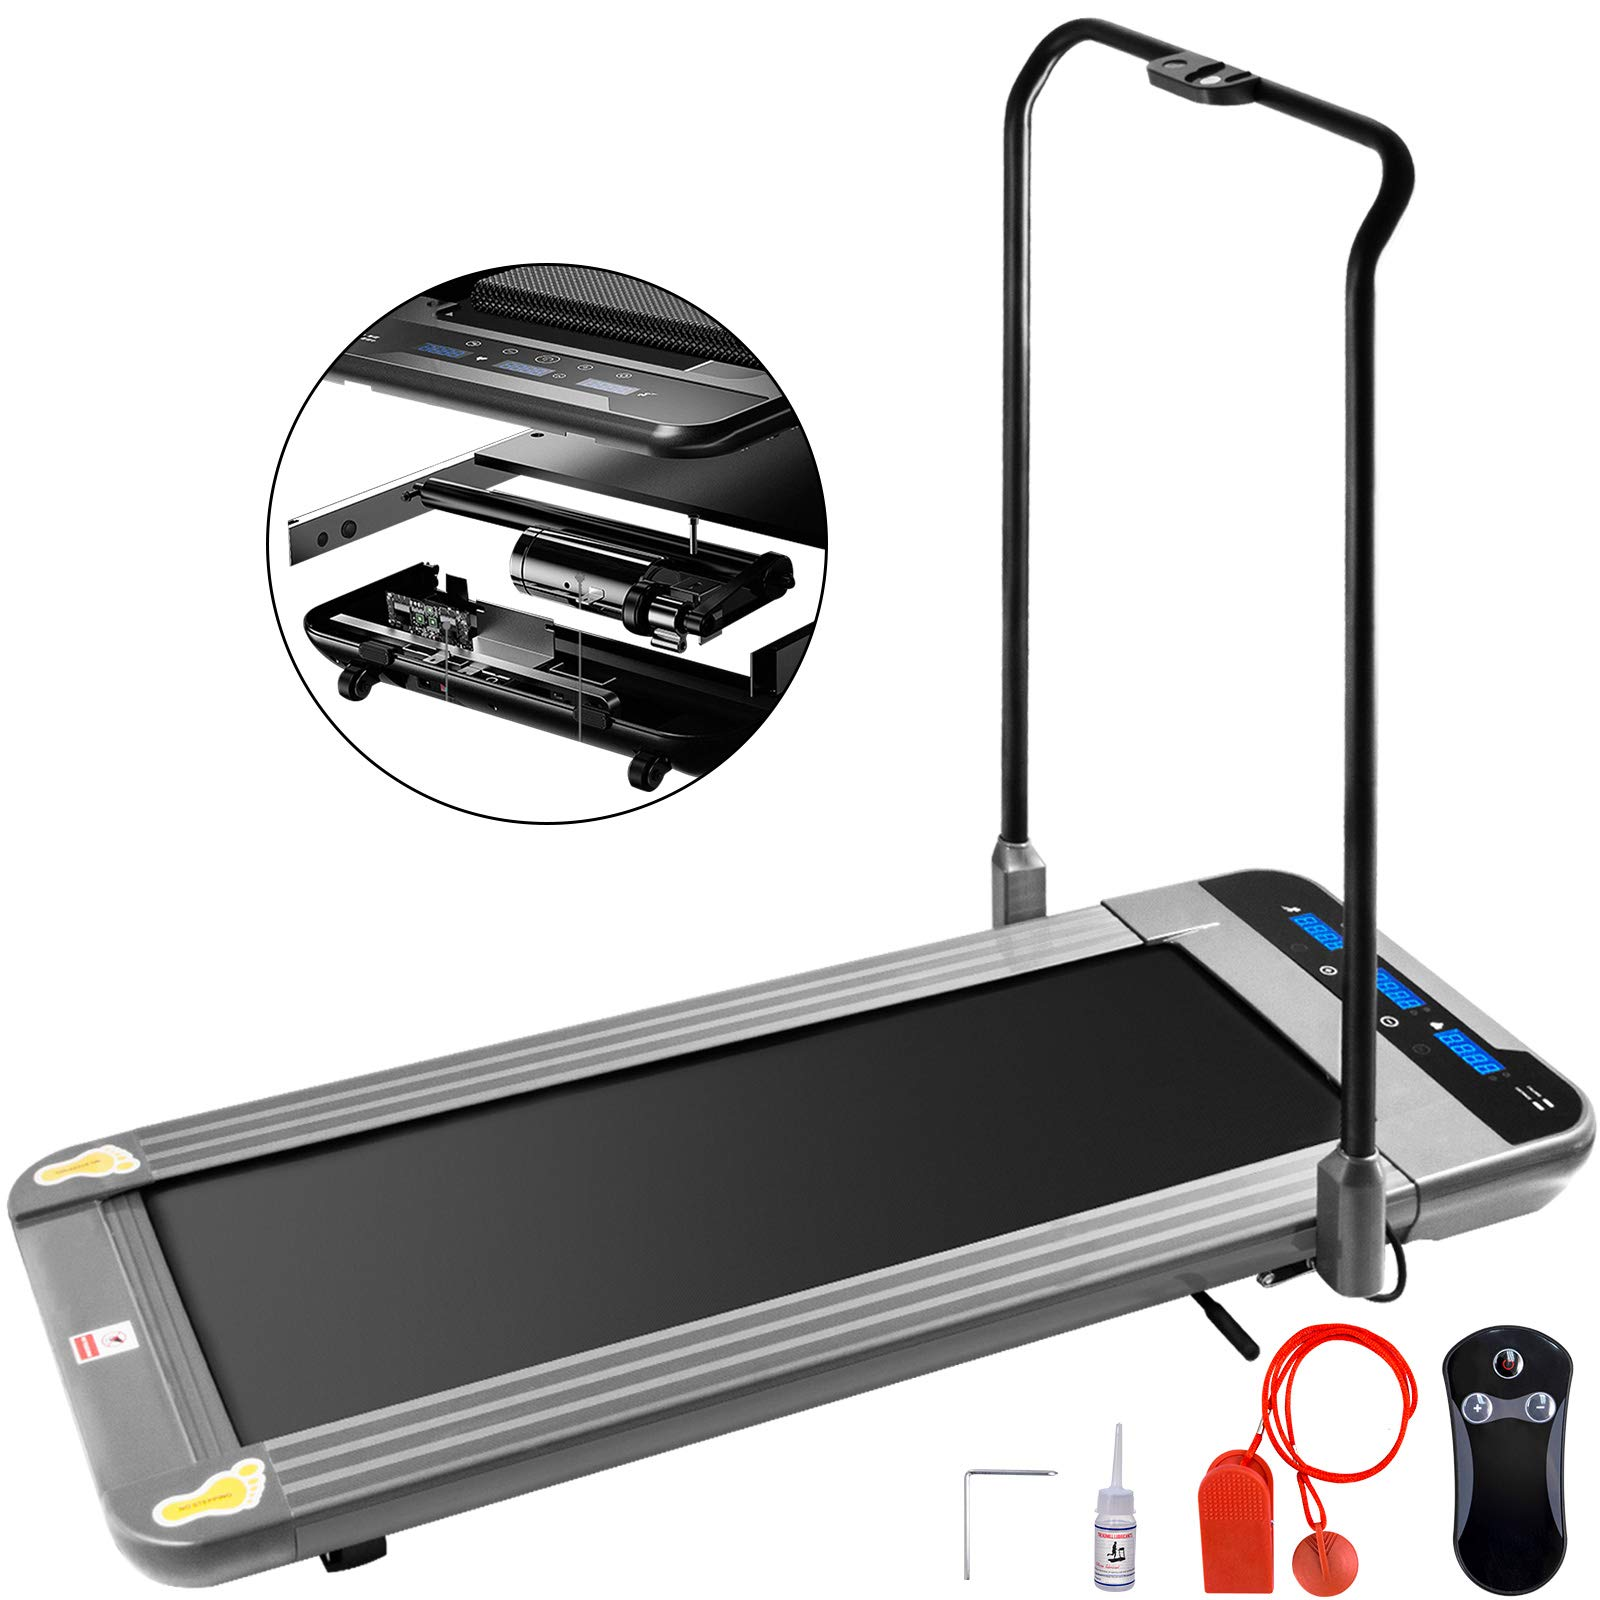 Popsport Smart Treadmill Folding Digital Portable Treadly Treadmill Slim Electric Walking Pad Fitness Training for Home Office(Sliver with Handle) by Popsport